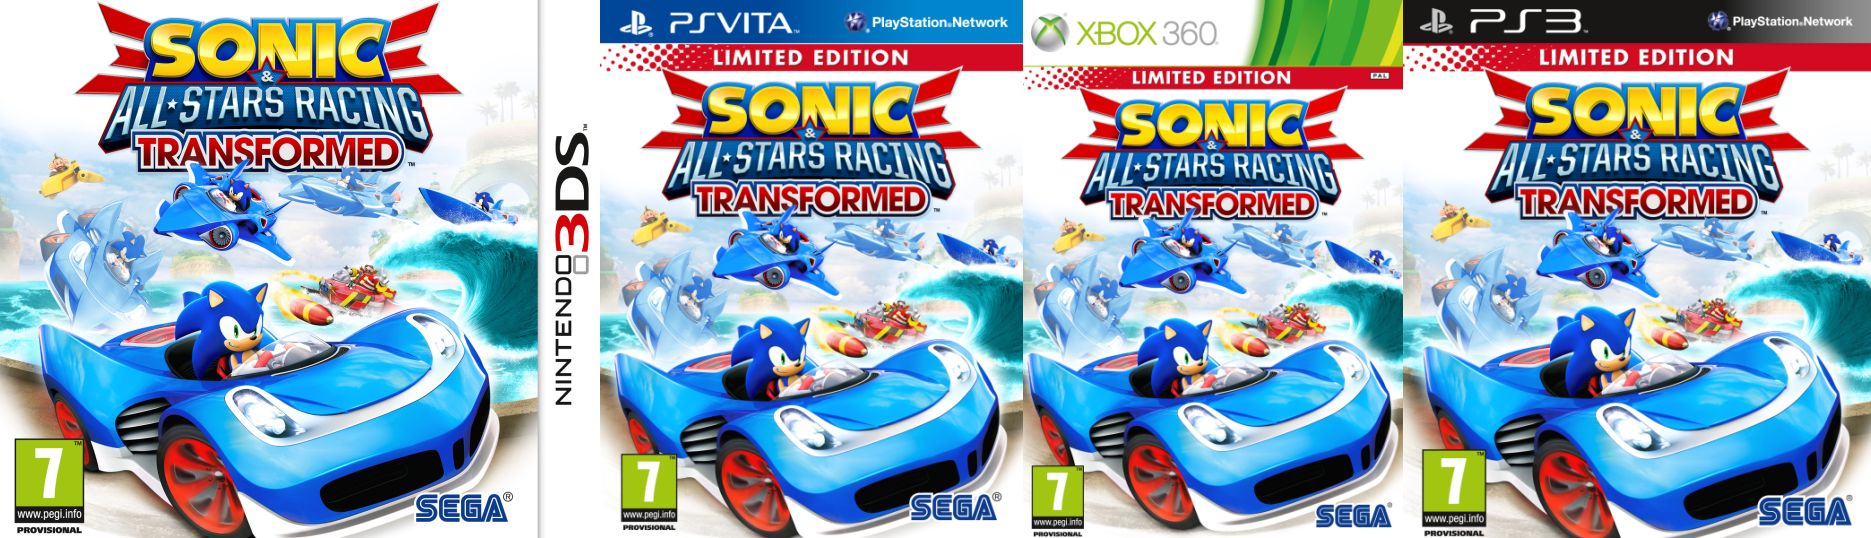 sonic all Sonic & All Stars Racing Transformed Limited Edition (XBox 360,Sony PS3,PS Vita,Nintendo 3DS & Wii U) für €17,70